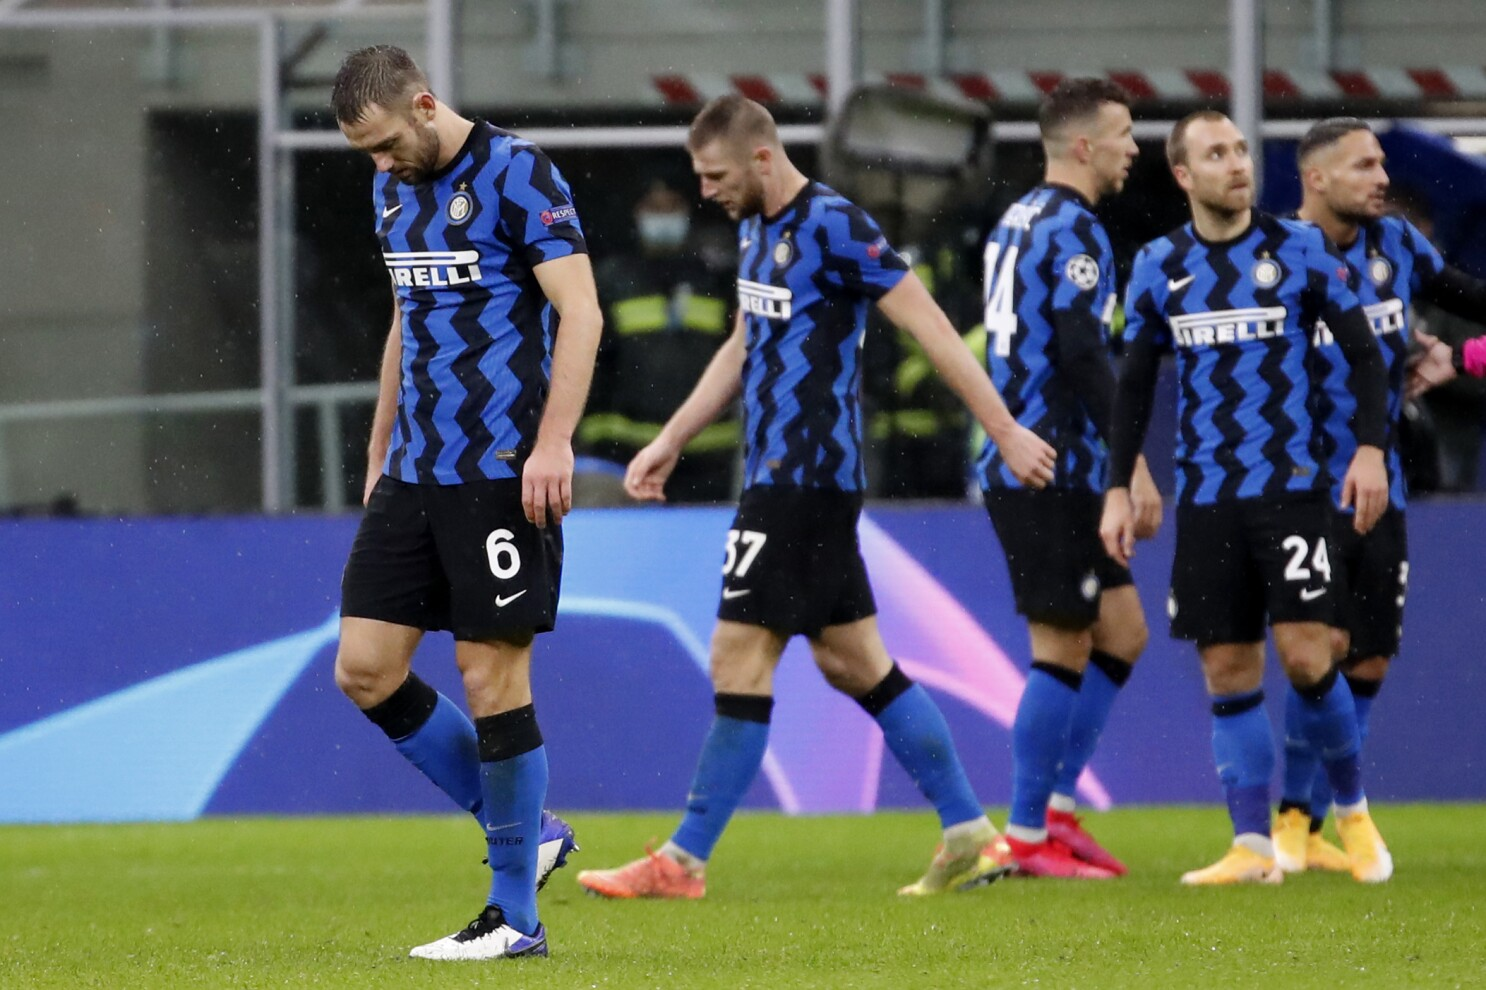 Inter, Shakhtar out of Champions League after 0-0 draw - The San Diego Union-Tribune